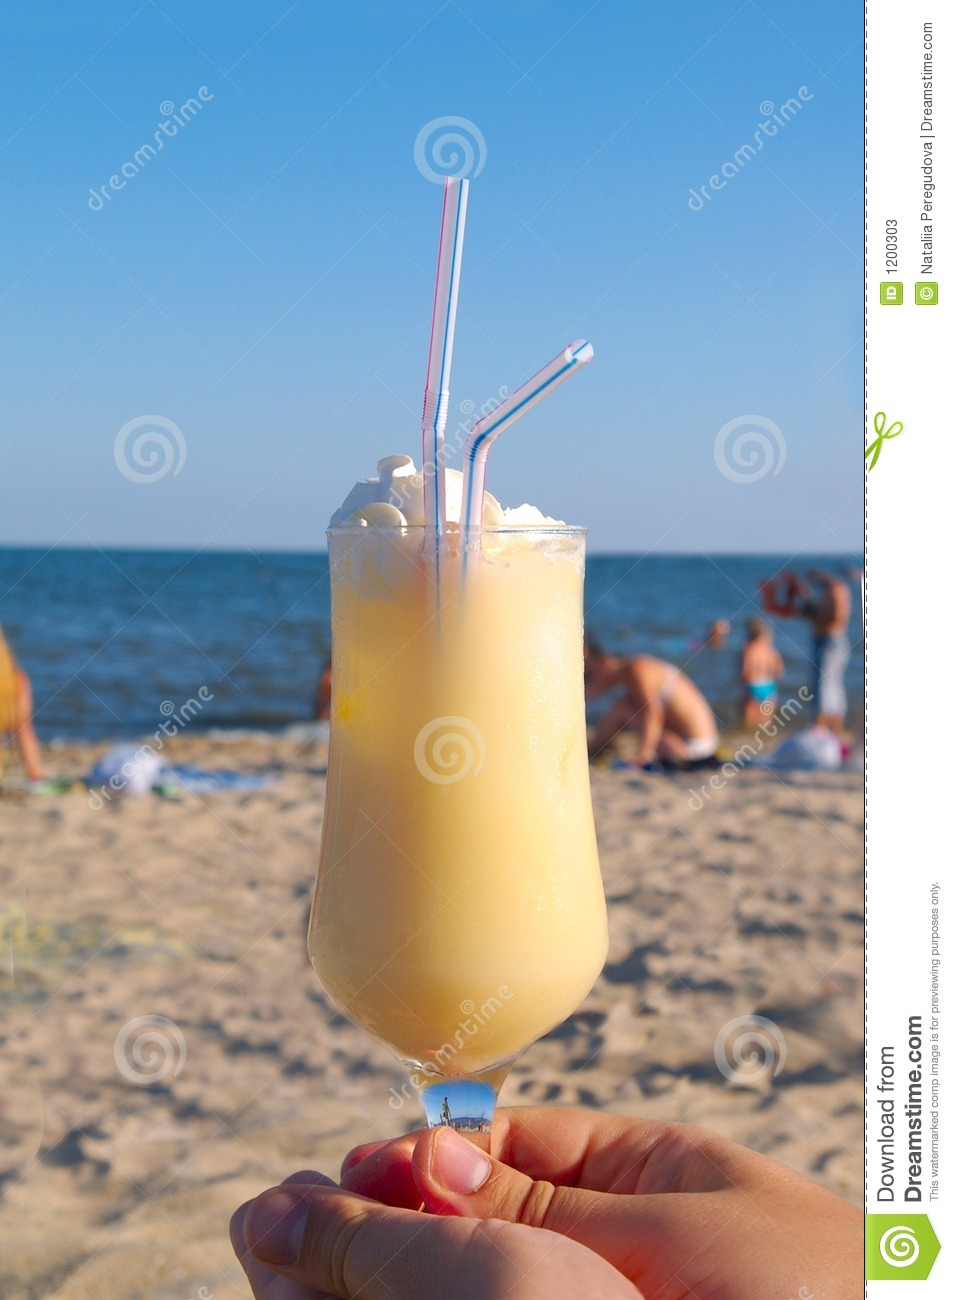 Pina-colada cocktail on the beach in woman hand